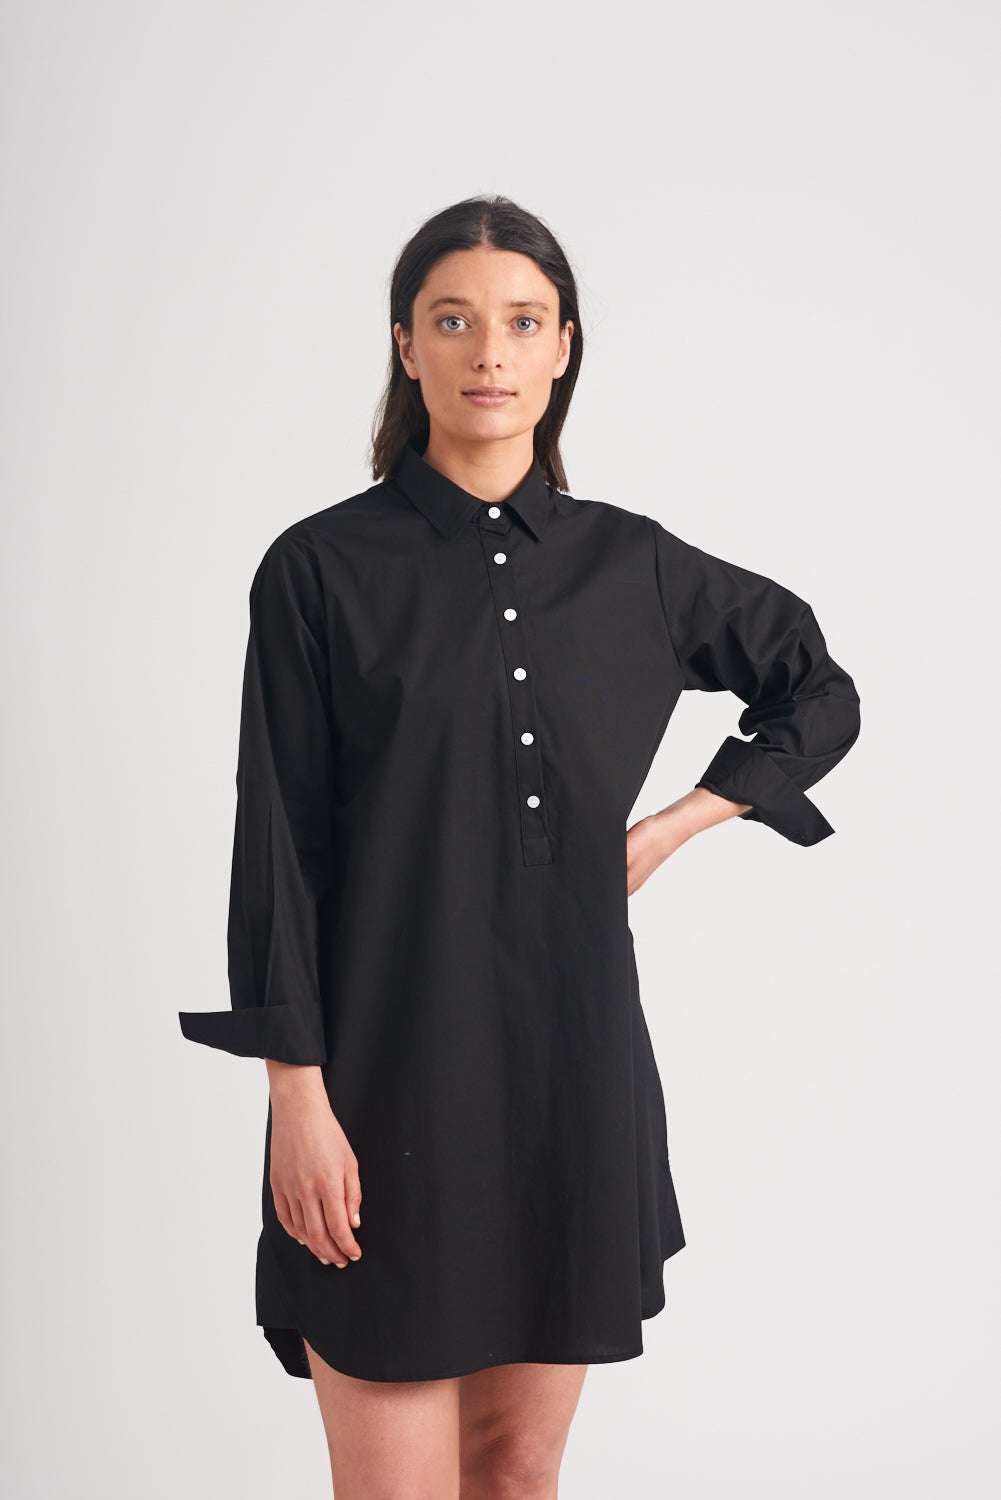 Shirty Shirt Dress Black